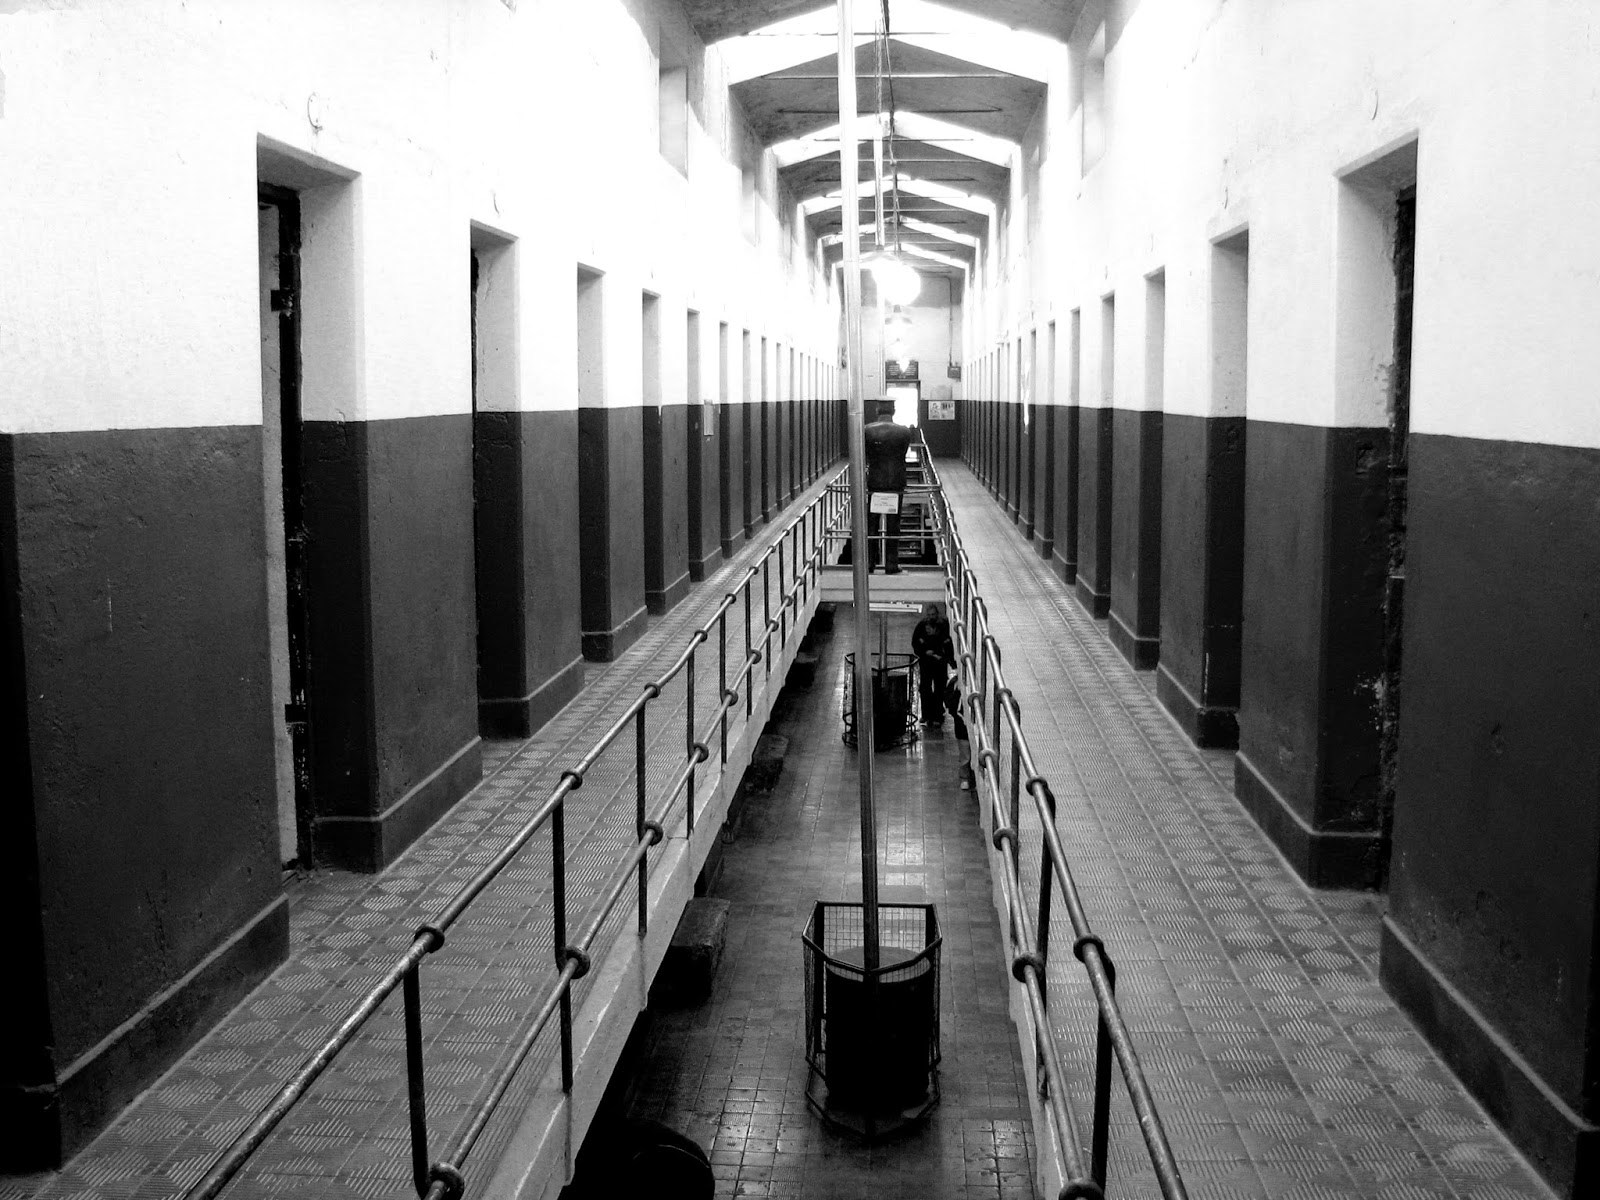 Prison Halls - Image Source: http://upload.wikimedia.org/wikipedia/commons/8/8b/End_of_the_world_prison.jpg